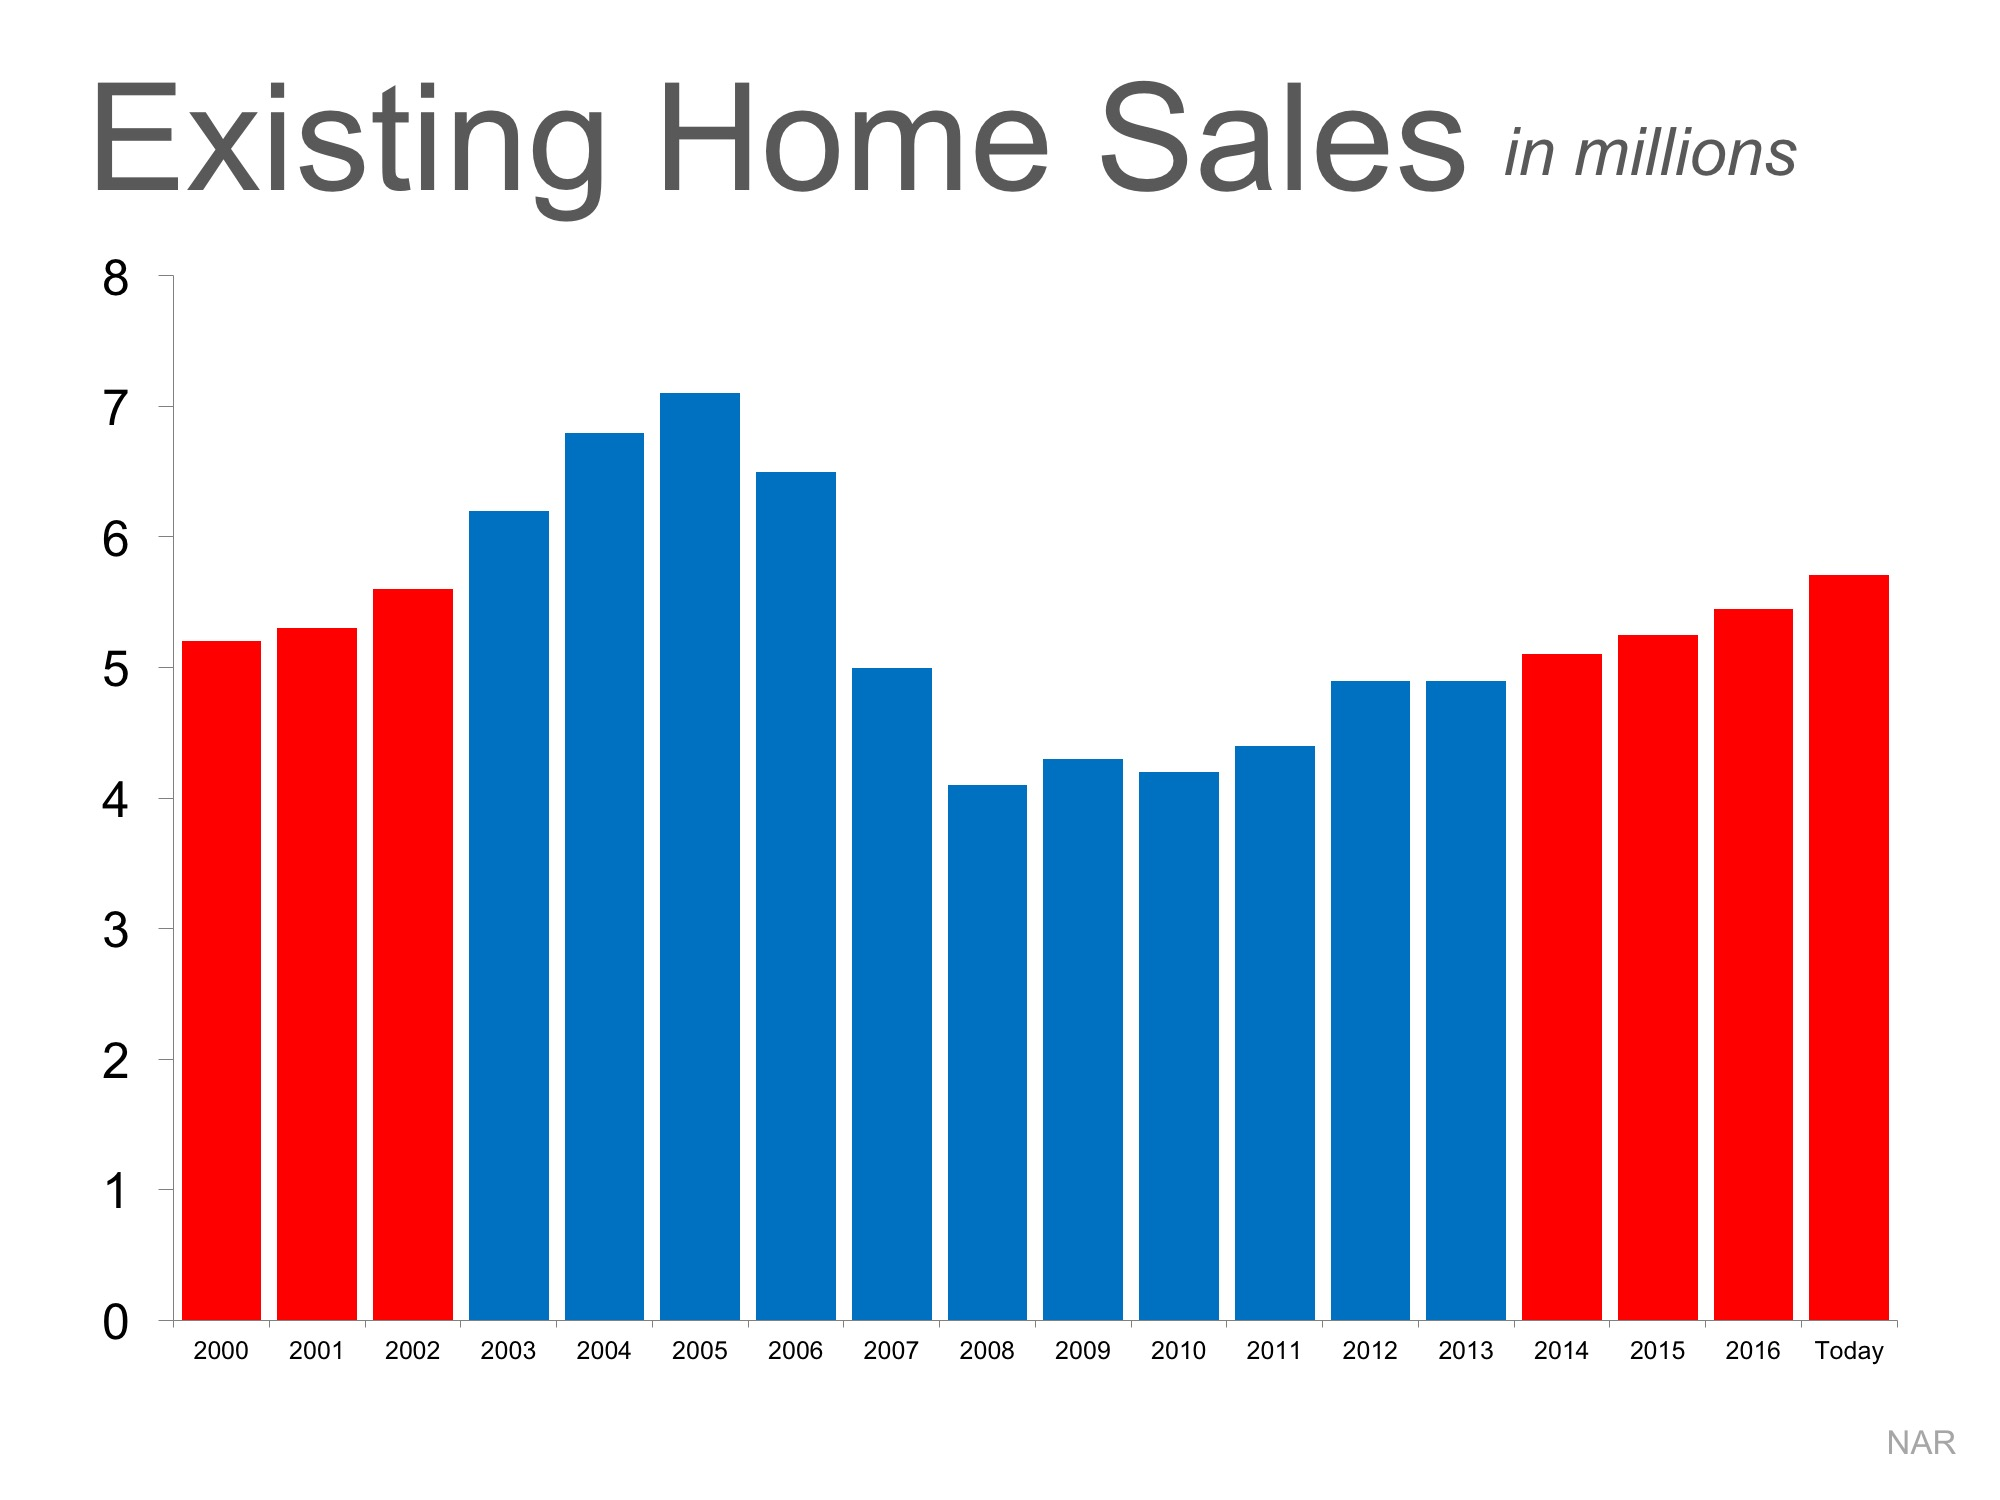 Is the Current Pace of Home Sales Maintainable? | Bridge Builders